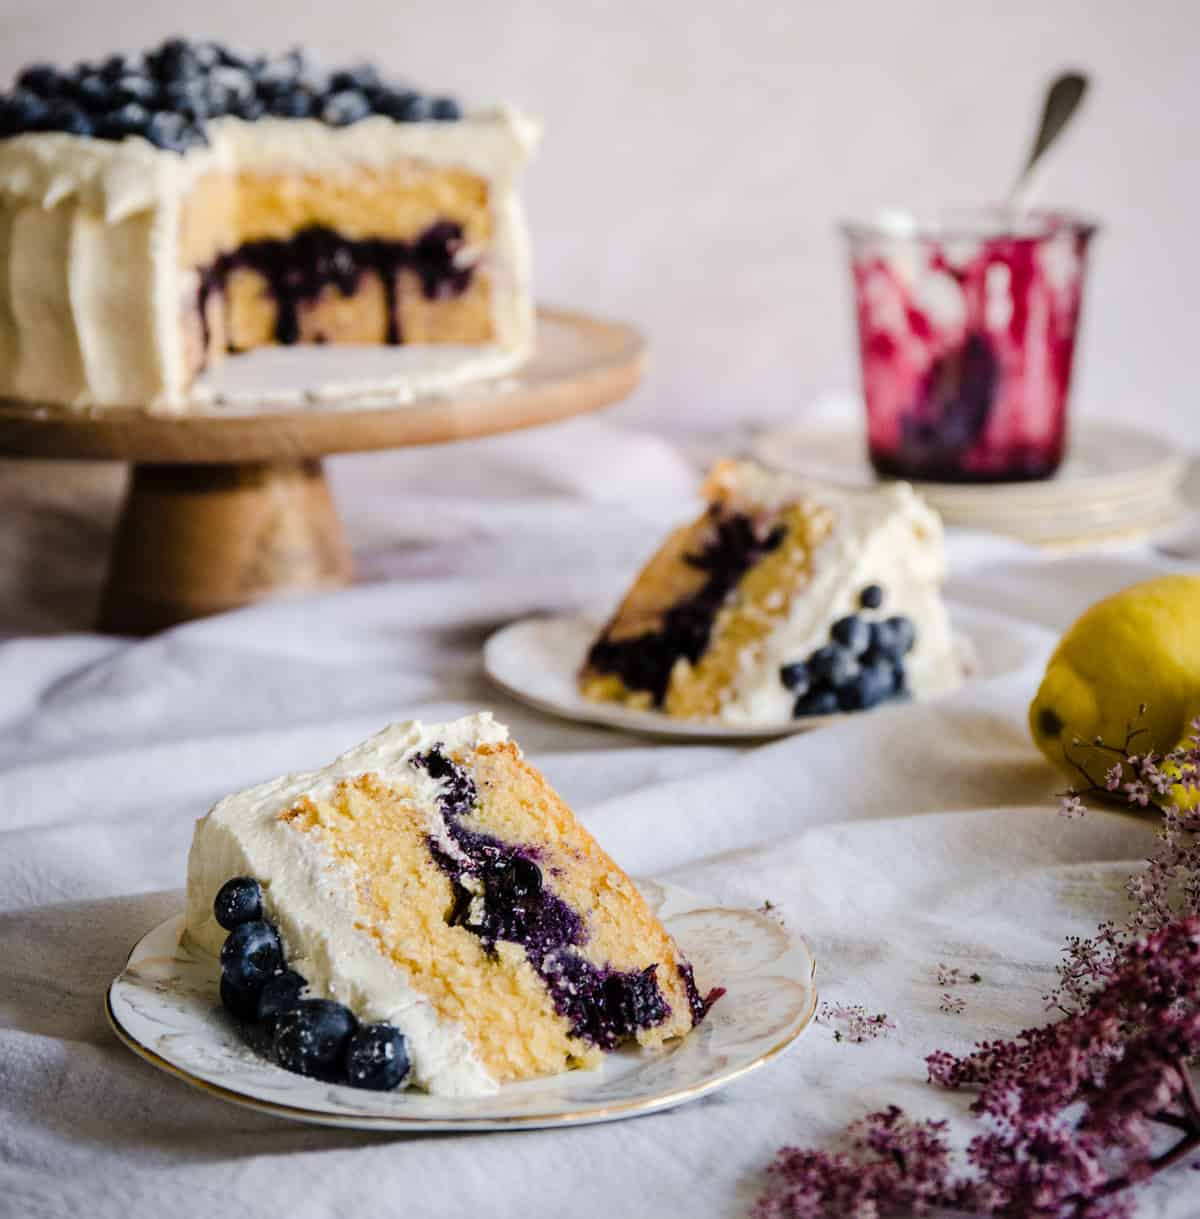 blueberry cake on a wooden stand surrounded by plated up slices of cake